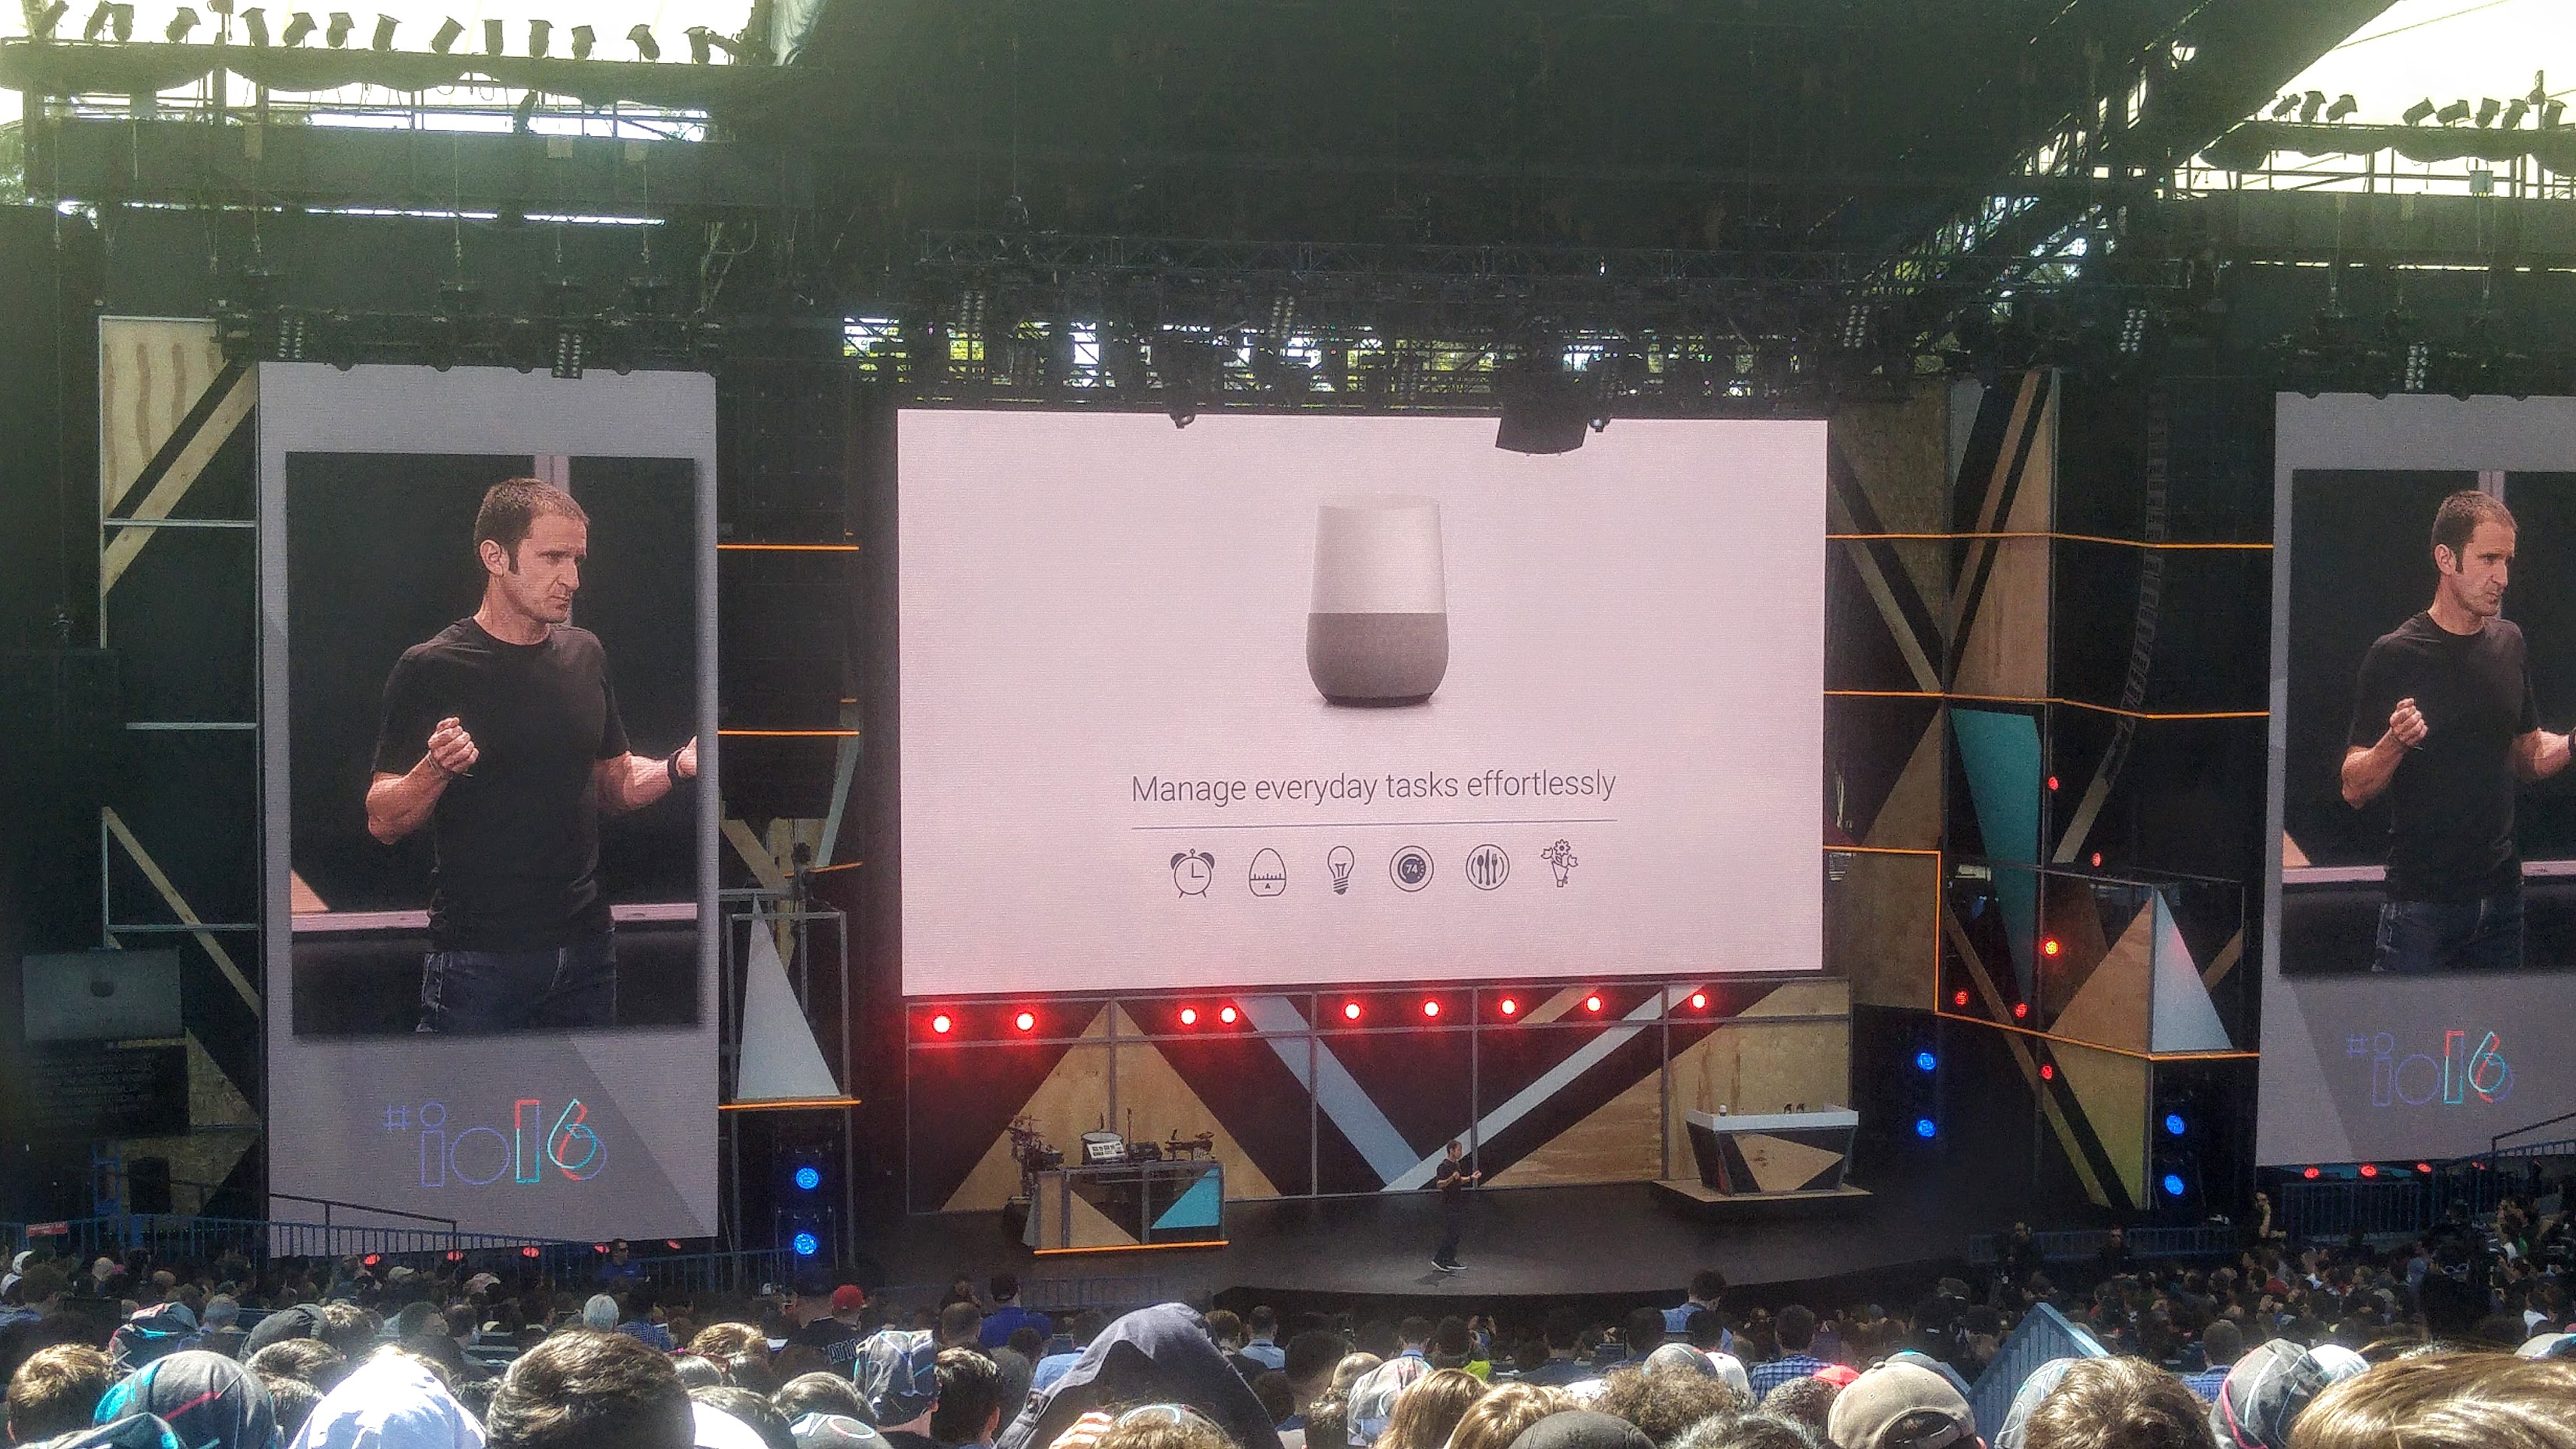 Introduction of Google Home at Google IO 2016